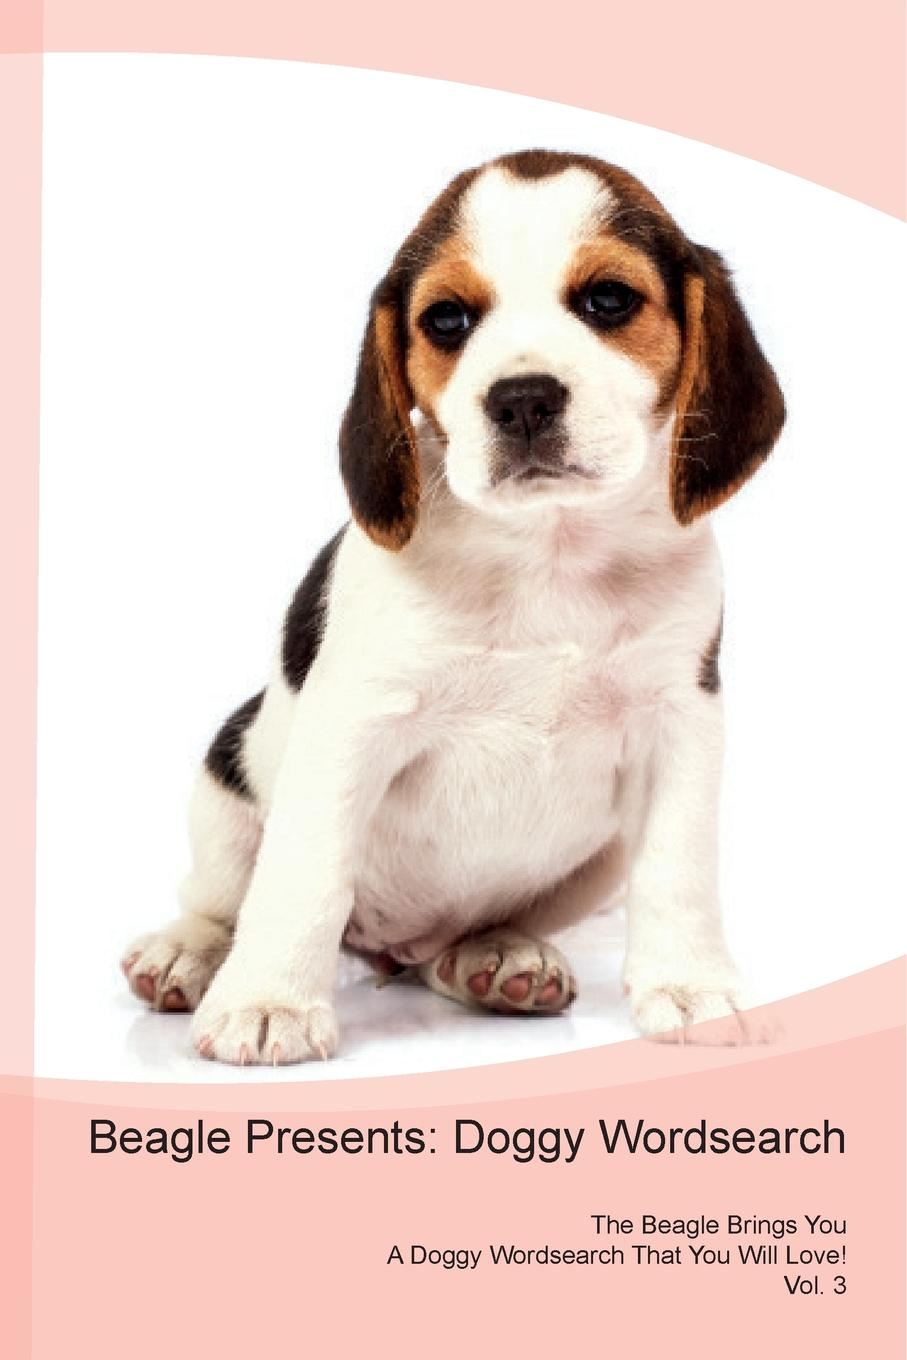 Doggy Puzzles Beagle Presents. Wordsearch The Brings You A That Will Love! Vol. 3